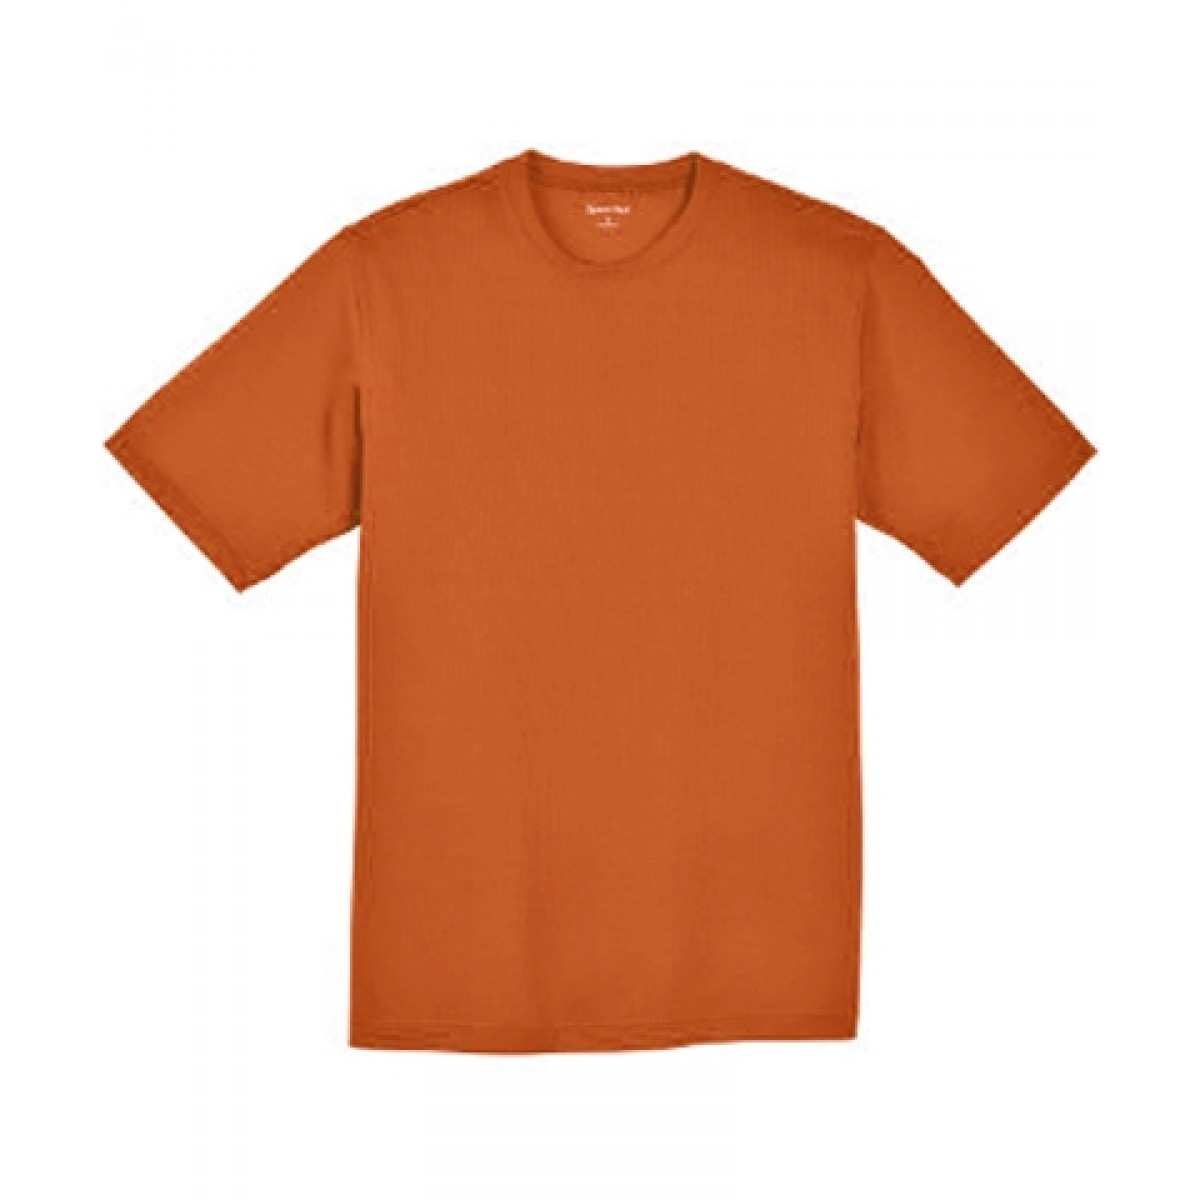 CLOSEOUT!!! SS Dri-Fit Tees-Orange-XL